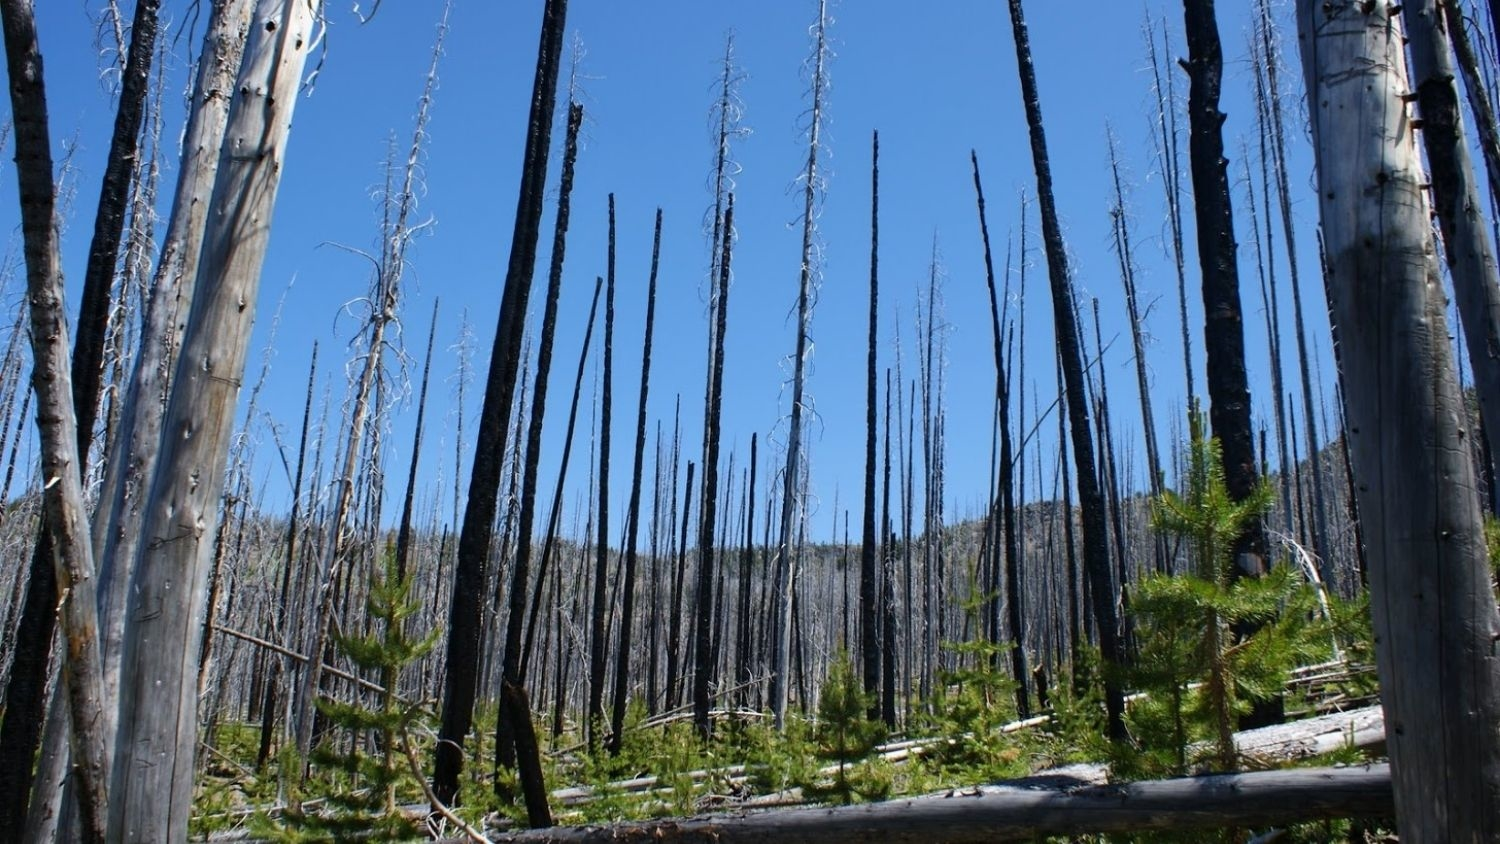 Forest in Oregon damaged by fire - Ecologist: People Should Prepare for Landscapes to Change -Forestry and Environmental Resources NC State University